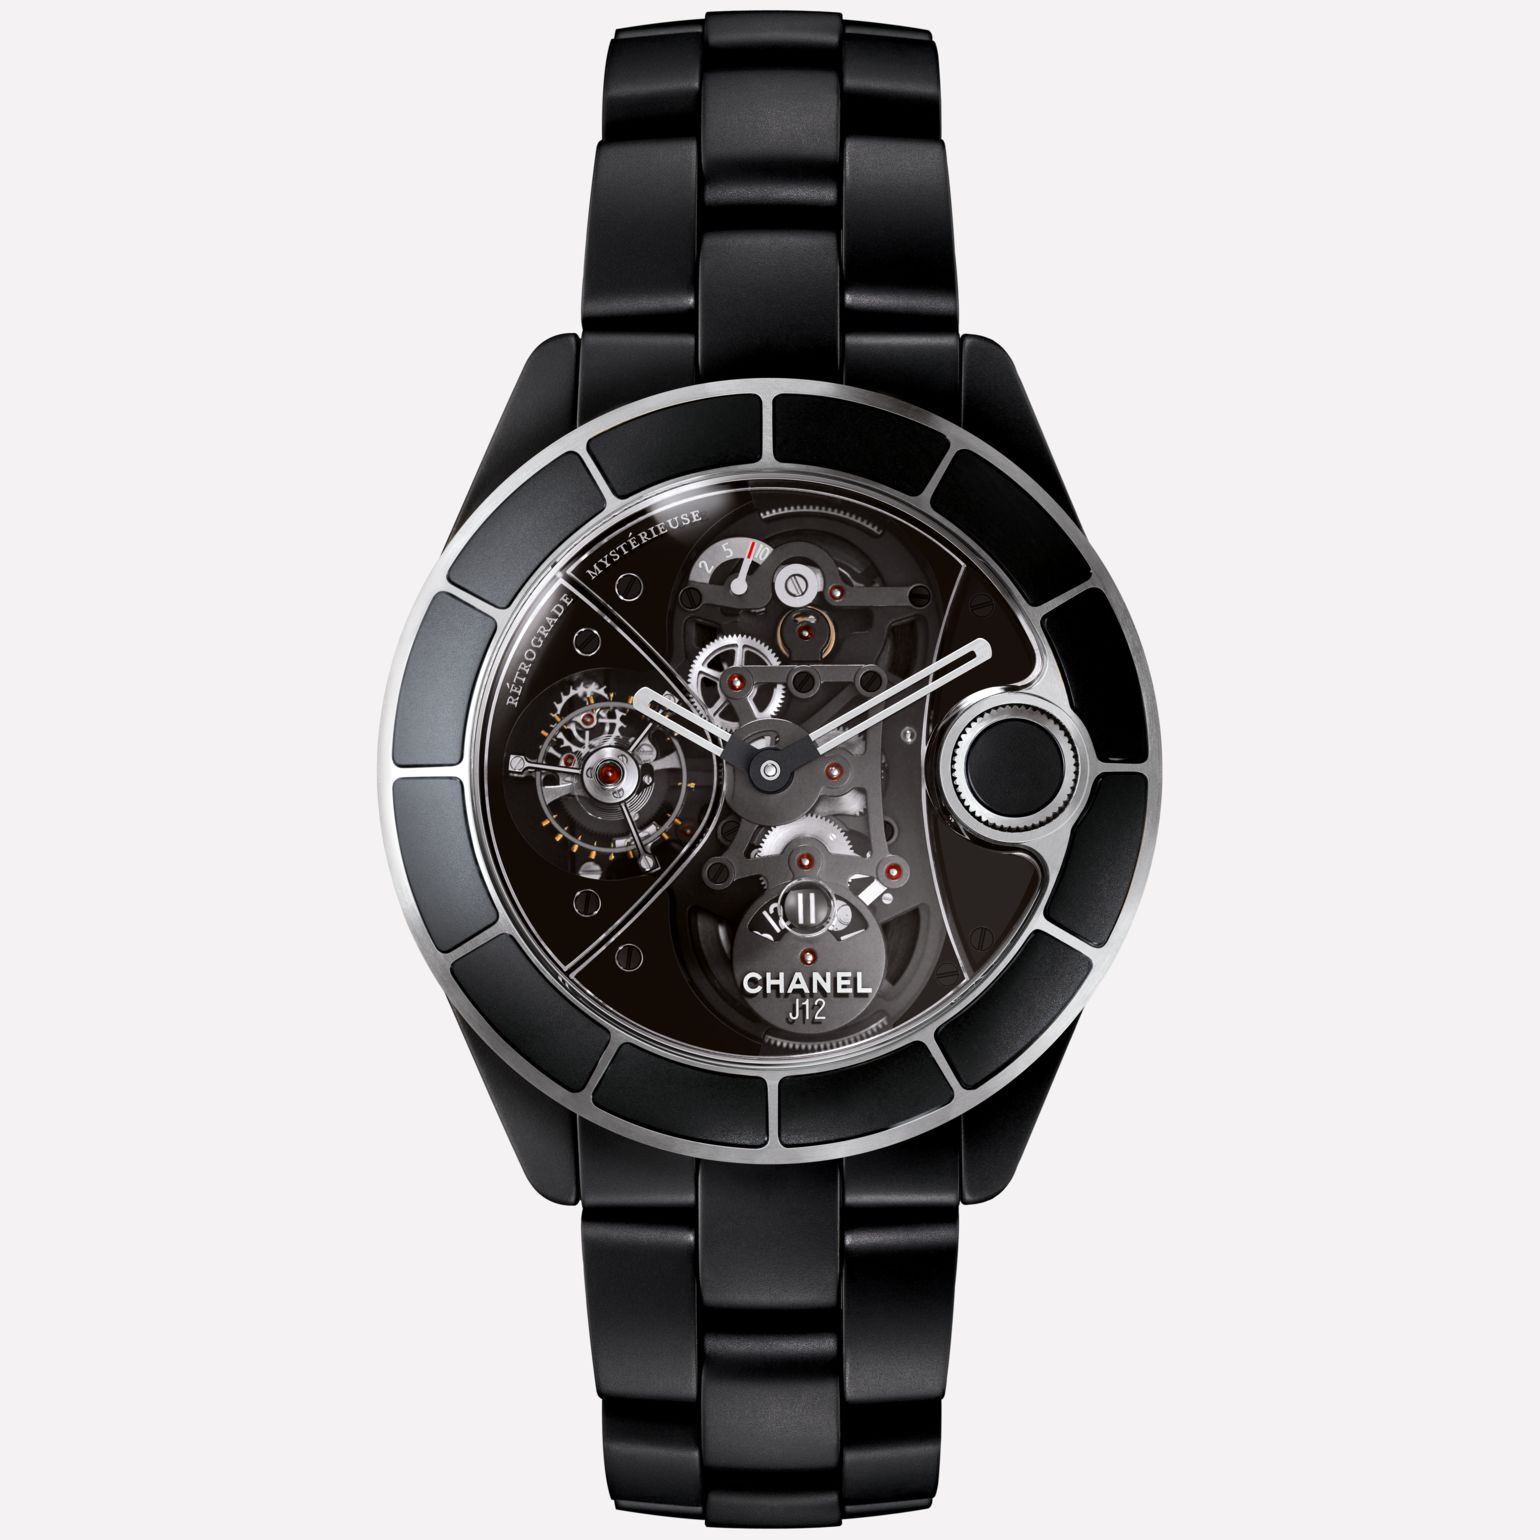 J12 RMT Watch Matte black highly-resistant ceramic, retrograde mysterieuse caliber and APRP for CHANEL tourbillon, retractable crown